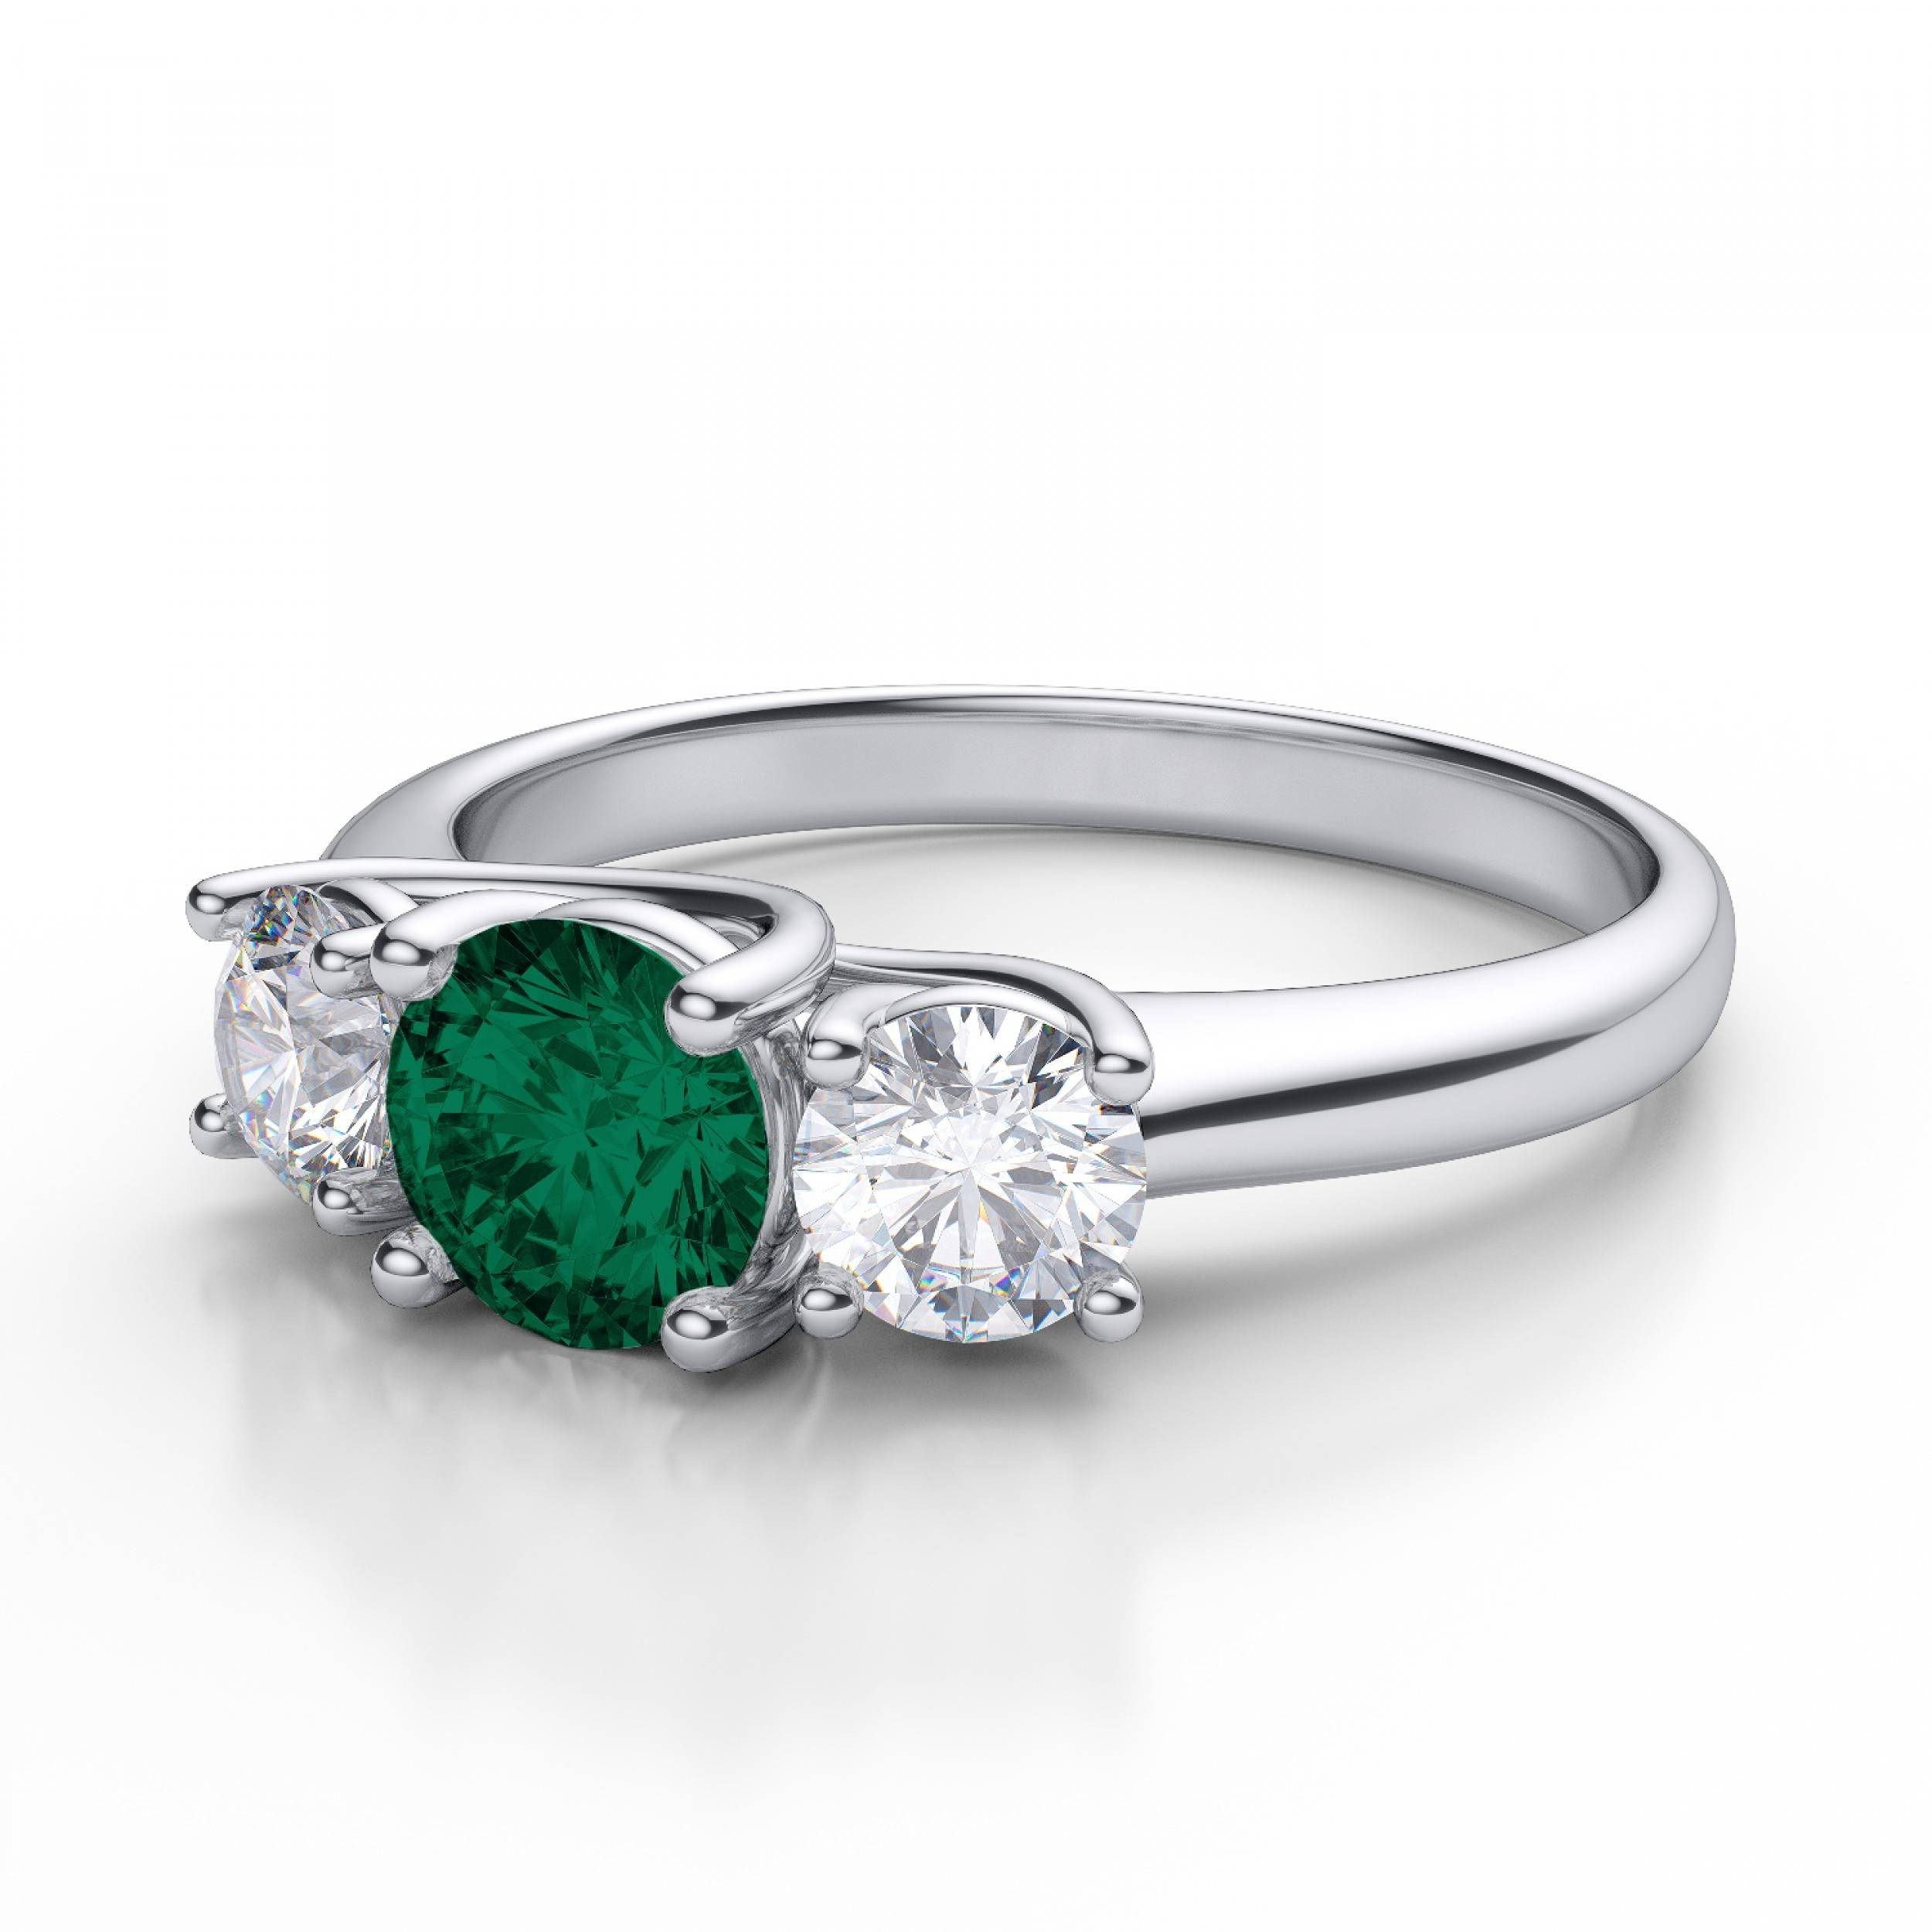 Stone Emerald Gemstone And Diamond Engagement Ring In 14K White Gold For Emerald Engagement Rings White Gold (View 14 of 15)